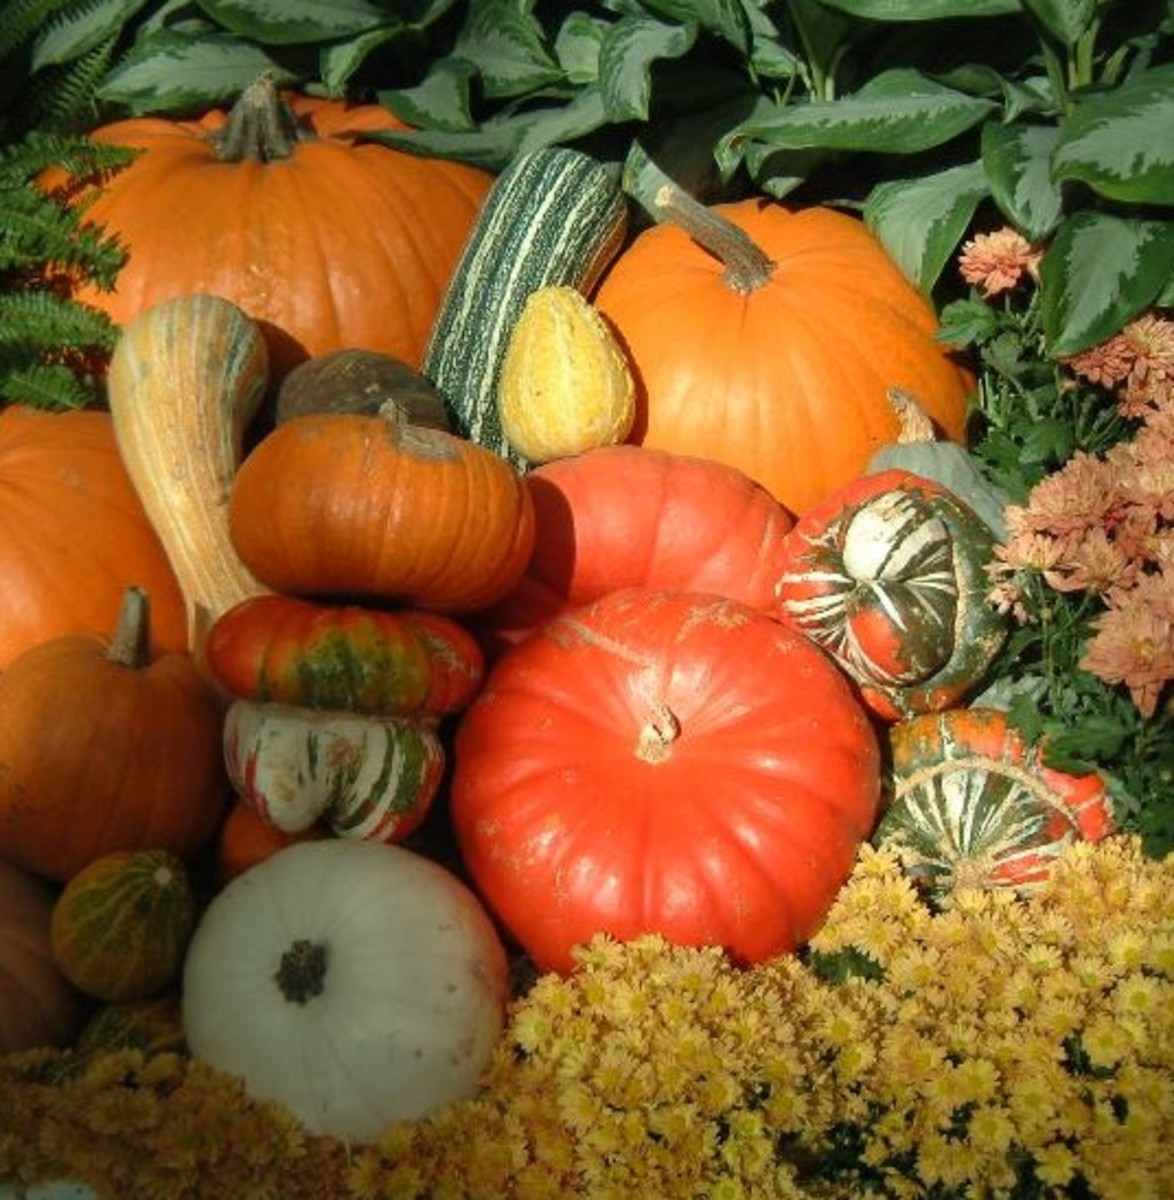 The different squashes, both edible and decorative, are favorites at this time of year.